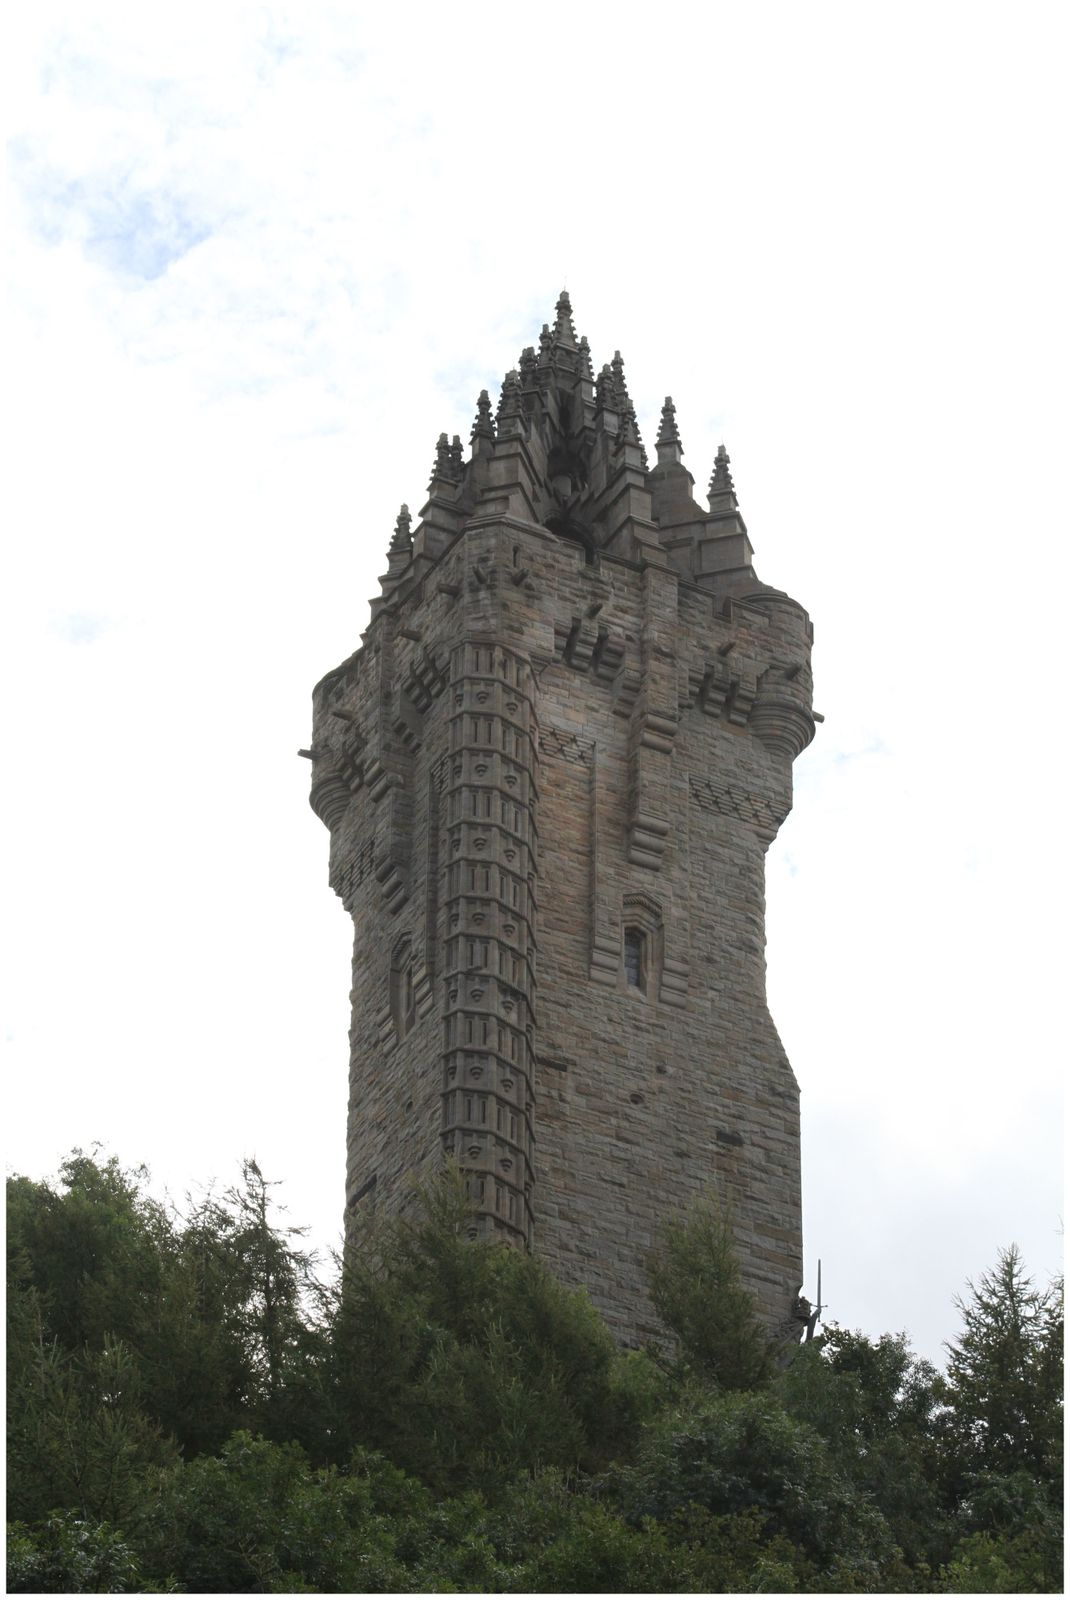 La tour William Wallace